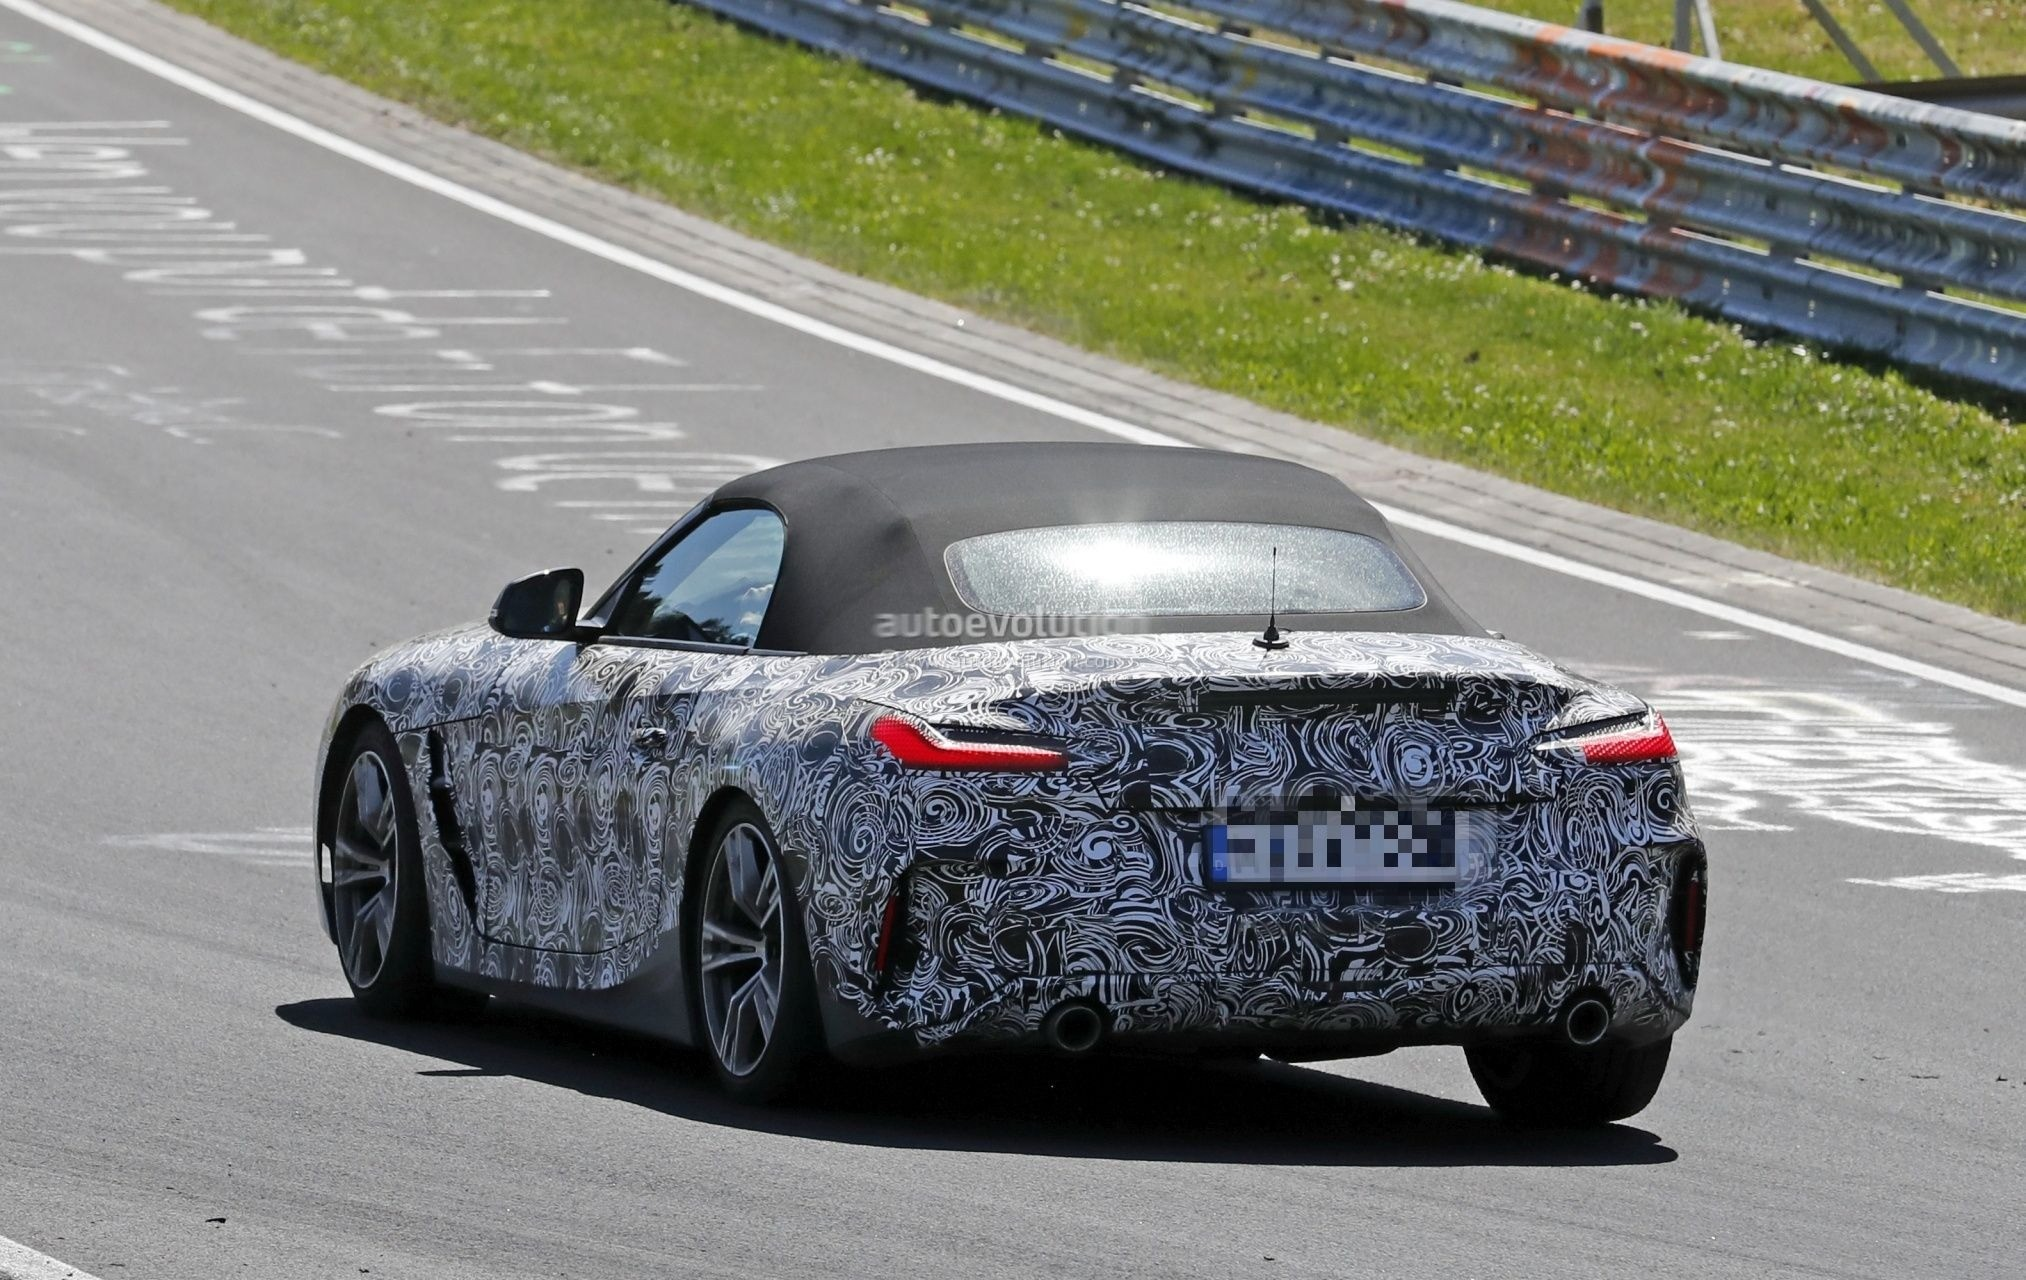 2019 Bmw Z4 Spied With Top Down Reveals Interior With